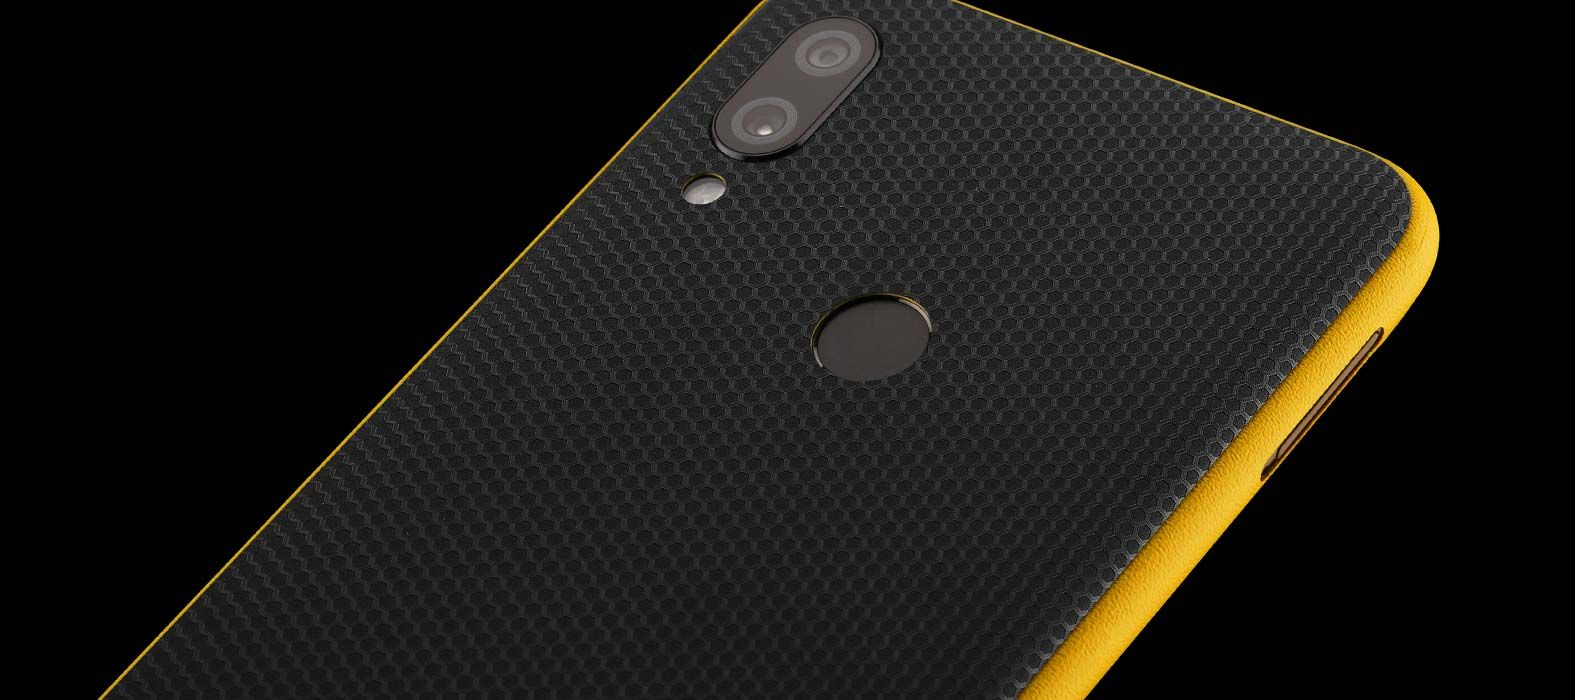 Redmi-note-7-pro_Bumblee-Bee_Skins